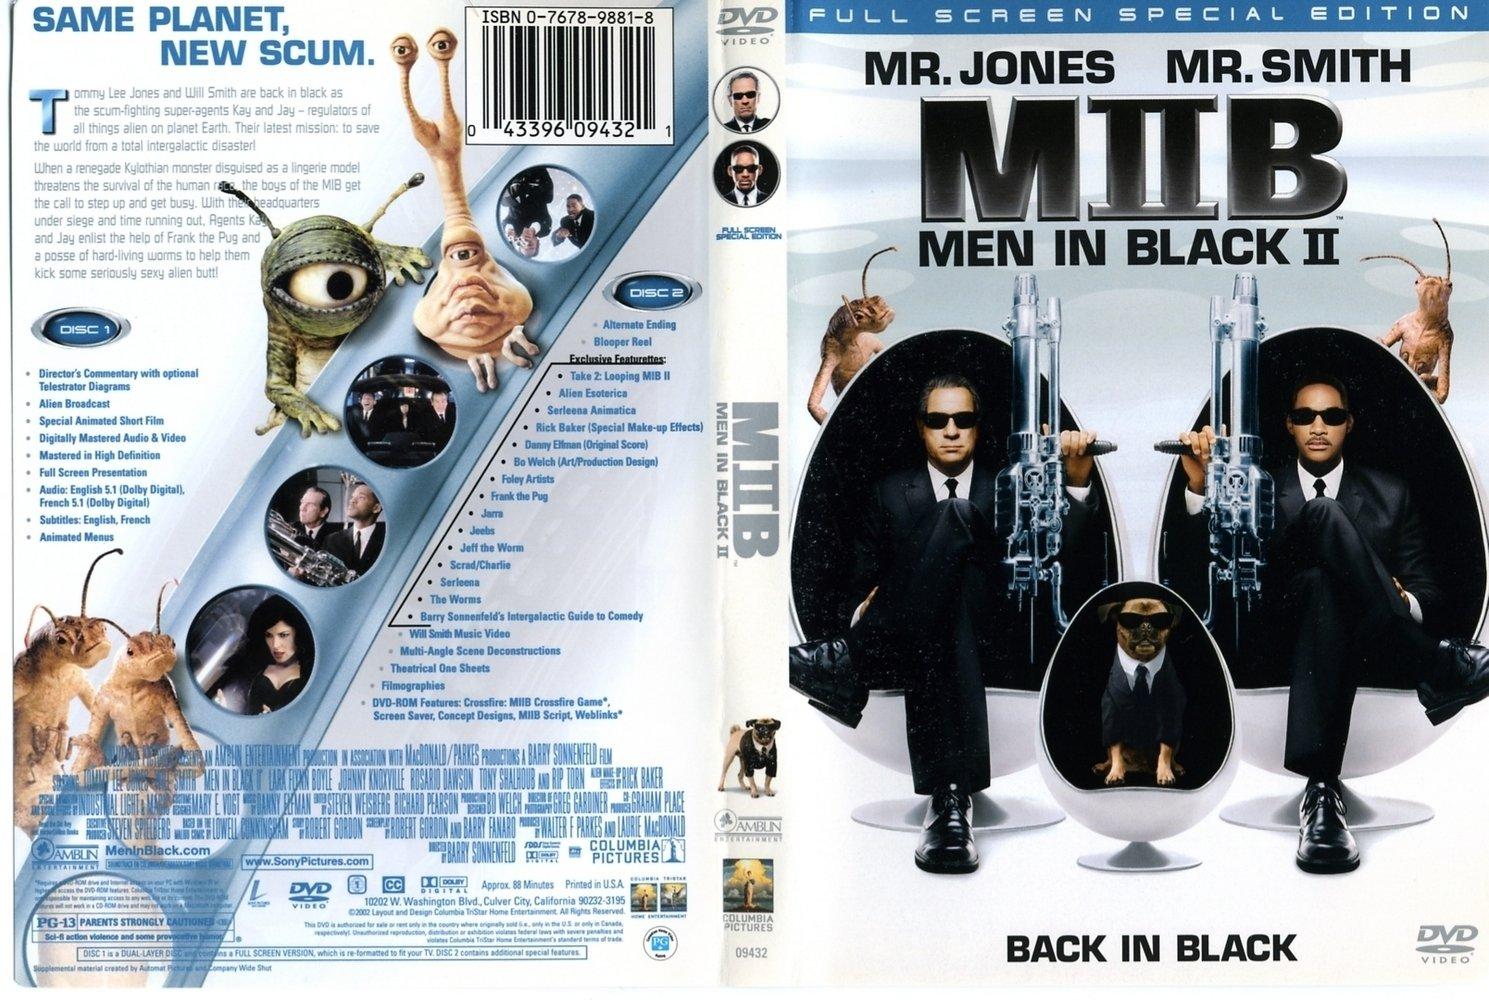 Men_In_Black_2 %5Bcdcovers_cc%5D front chris bossons advanced portfolio men in black ii dvd cover & movie